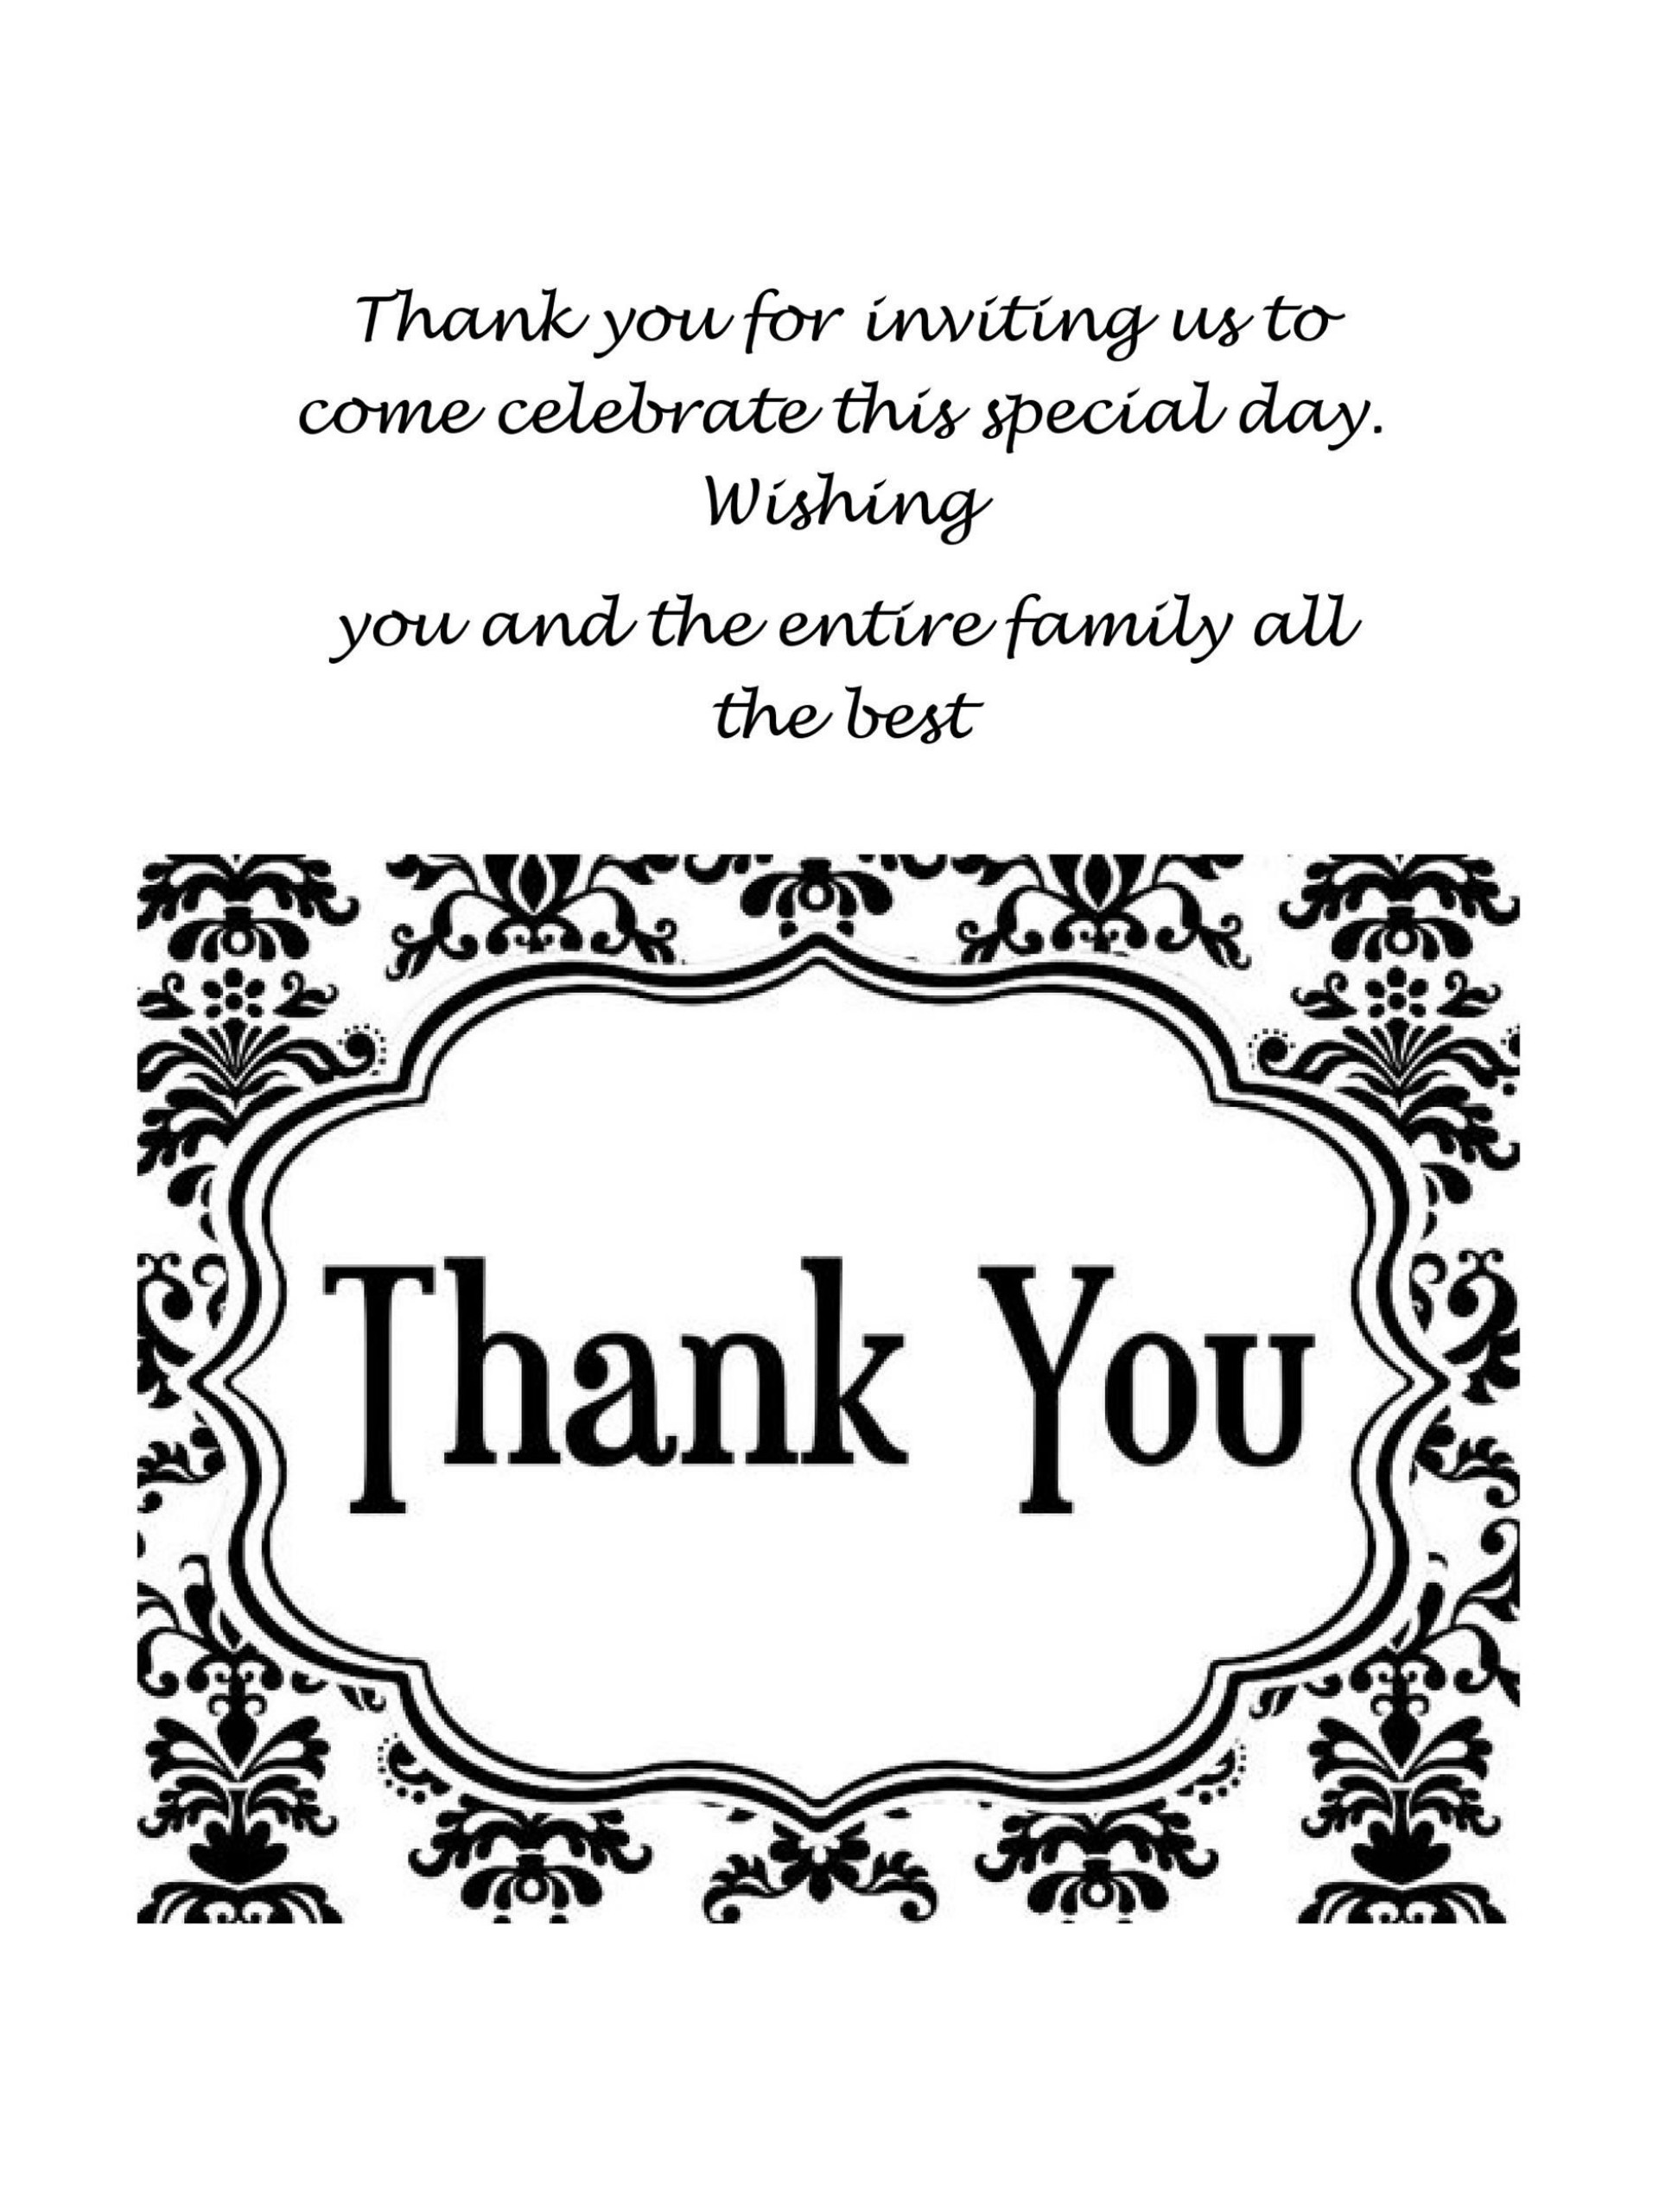 008 Archaicawful Thank You Card Template Design  Wedding Busines Word Free1920